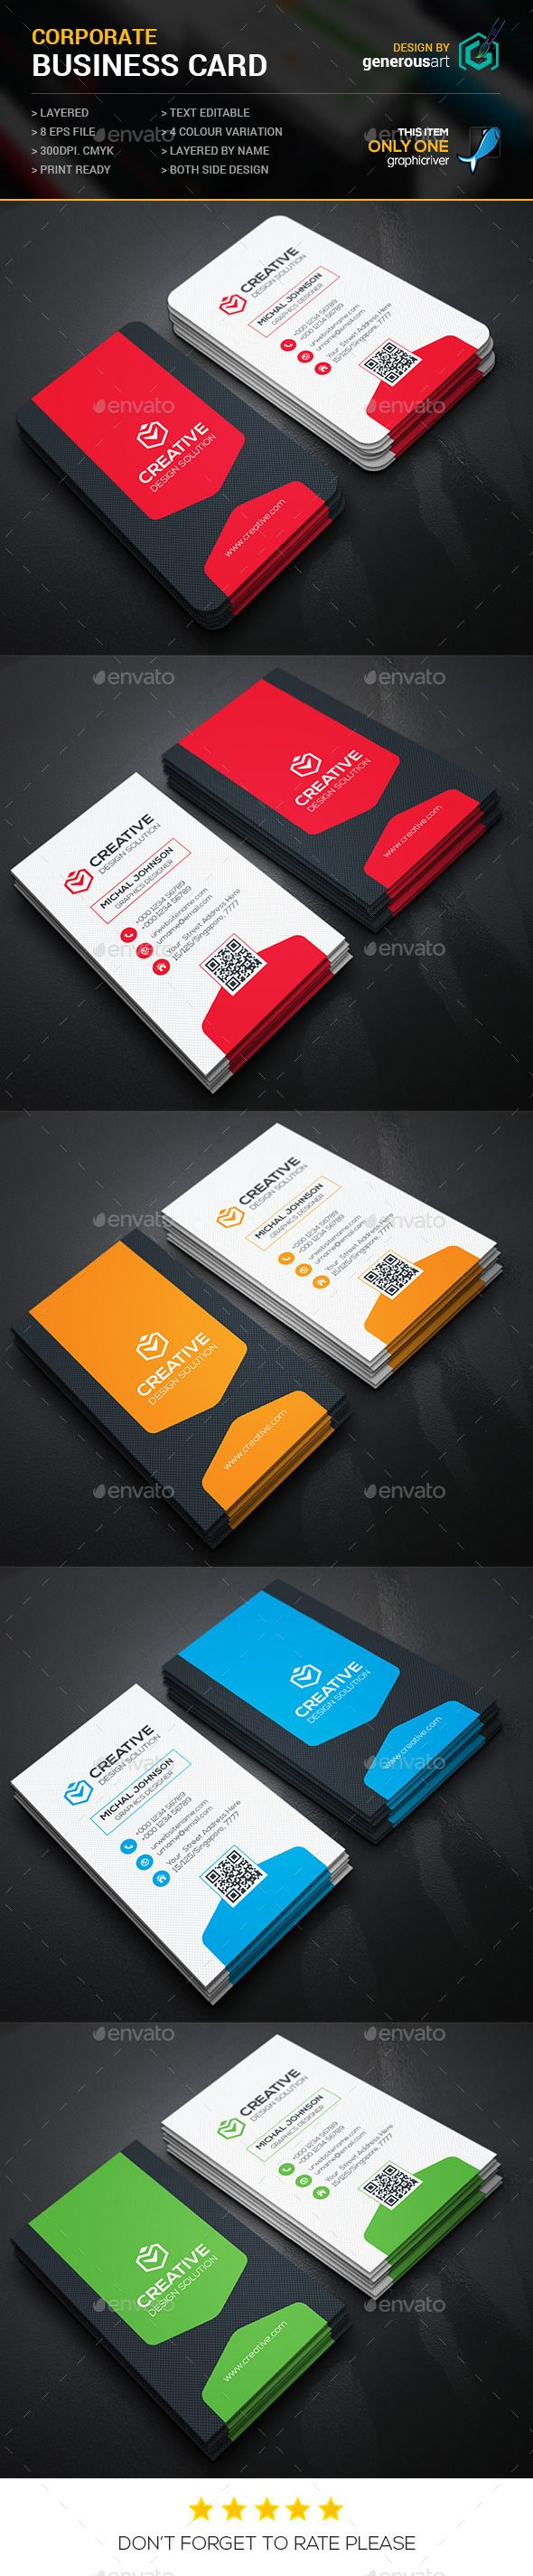 creative business cards 2 corporate business card templates and